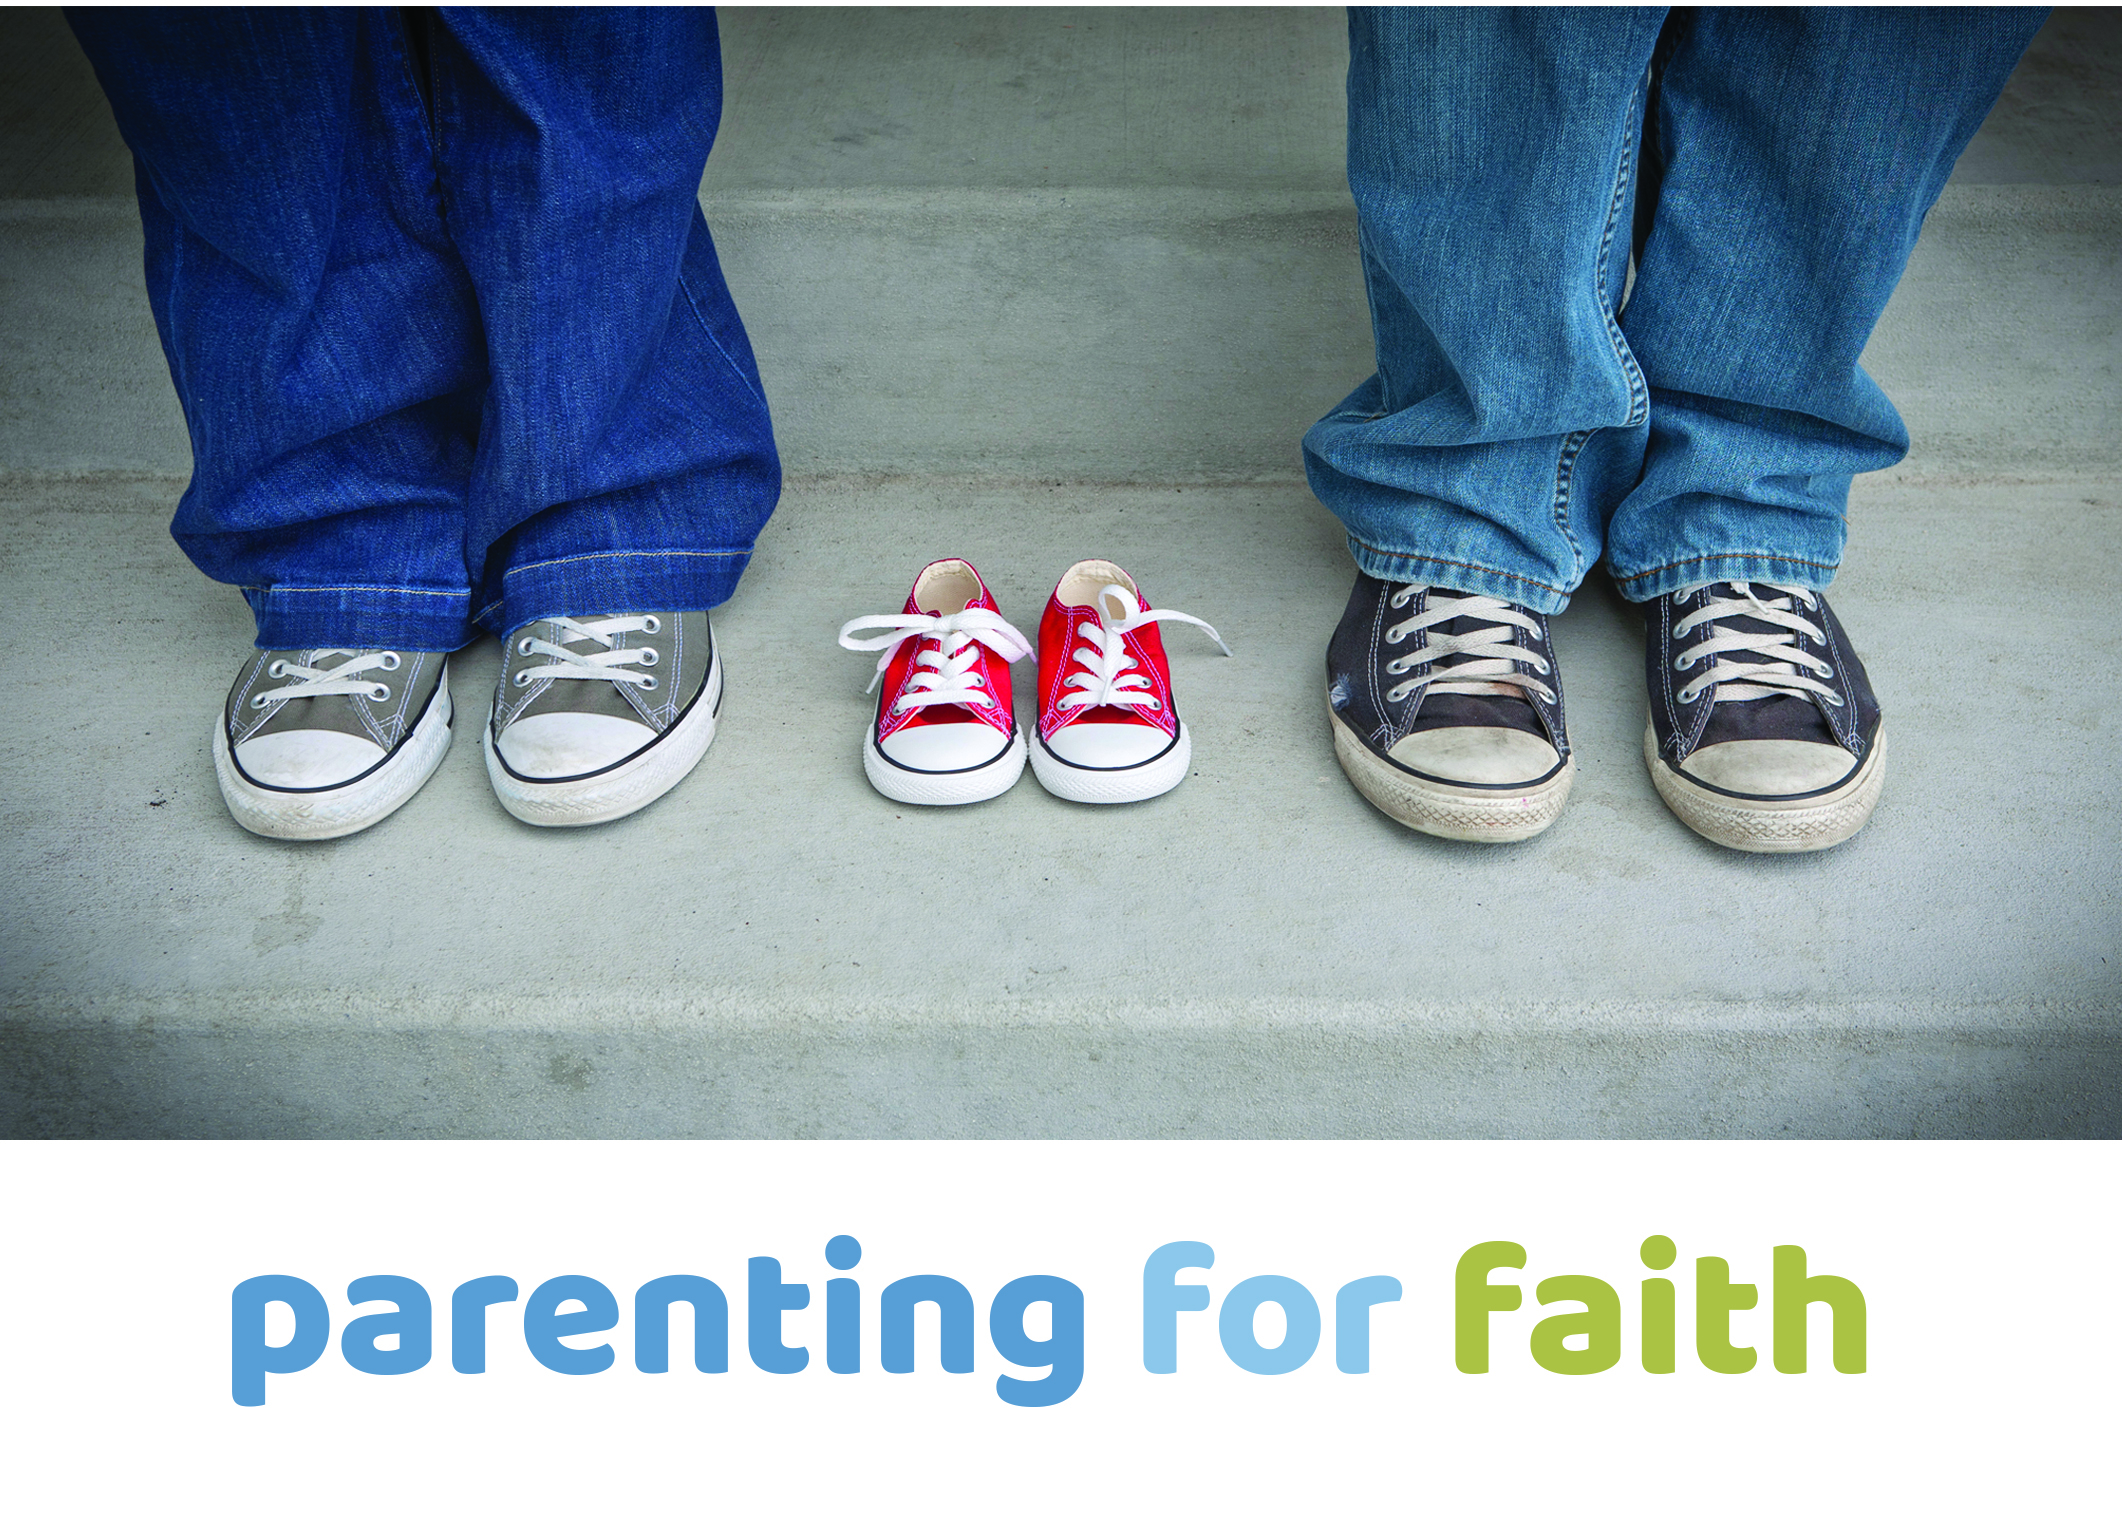 FLYER FRONT_Parenting For Faith_Courses 2019.jpg